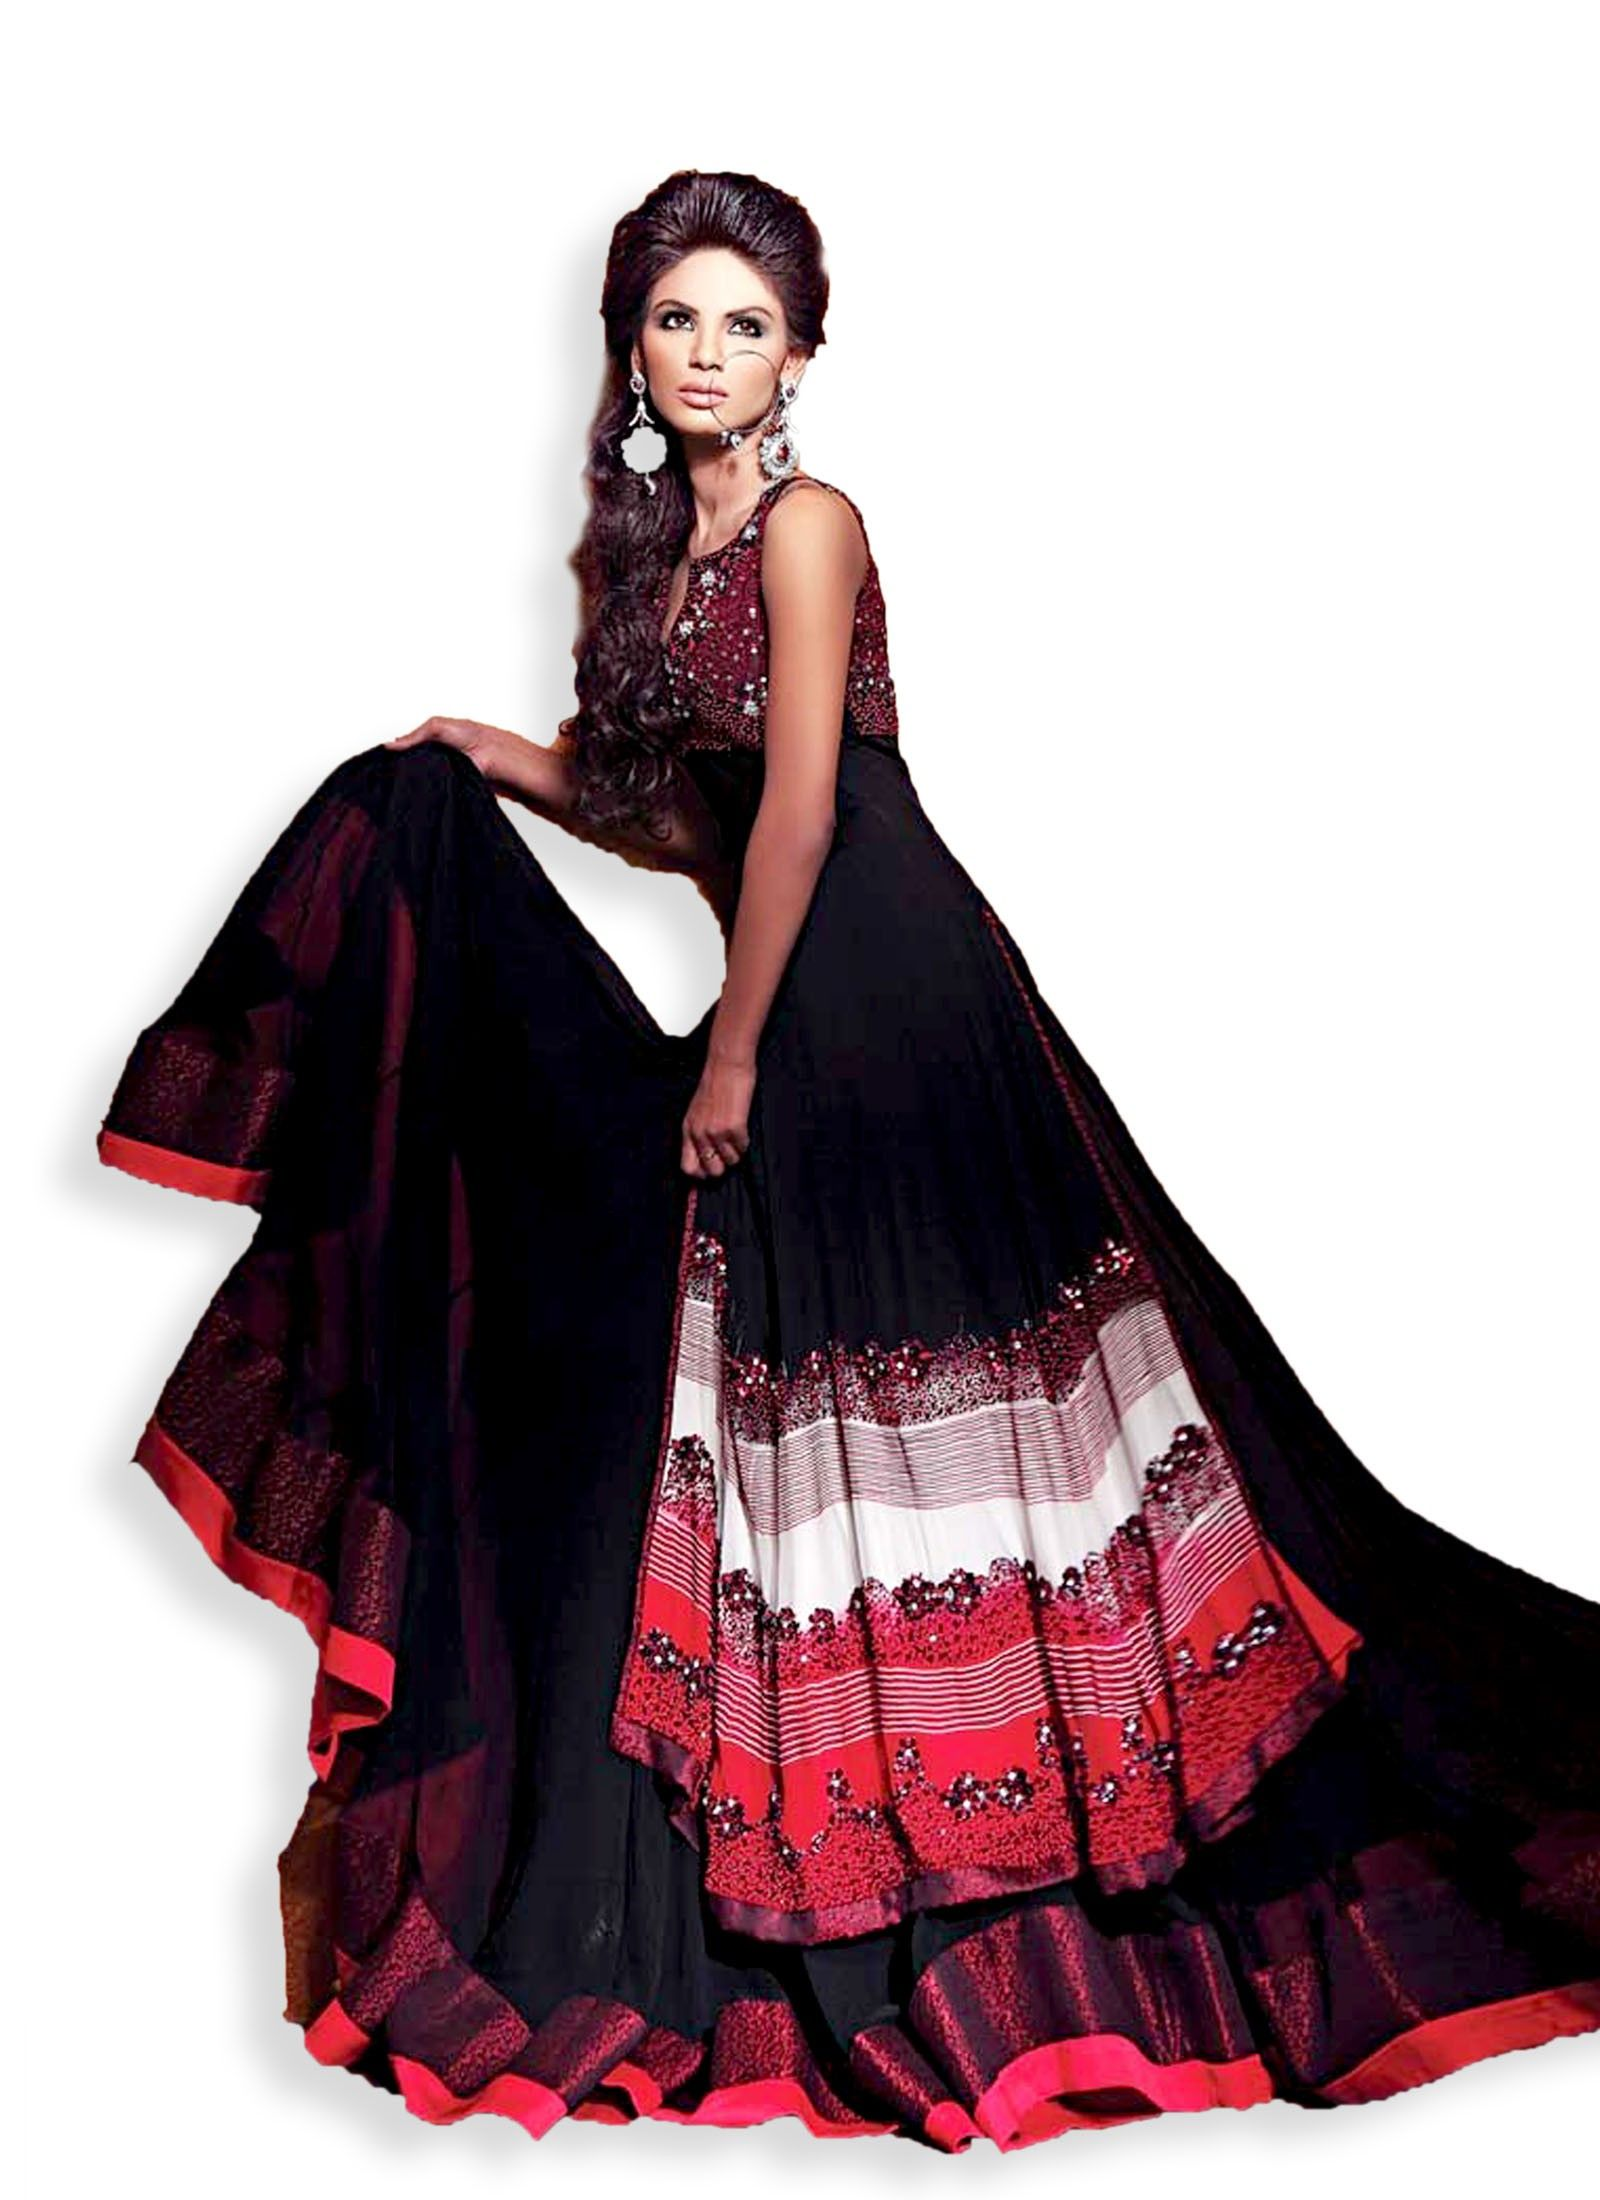 Fashionsouk is an online shopping mall offering latest